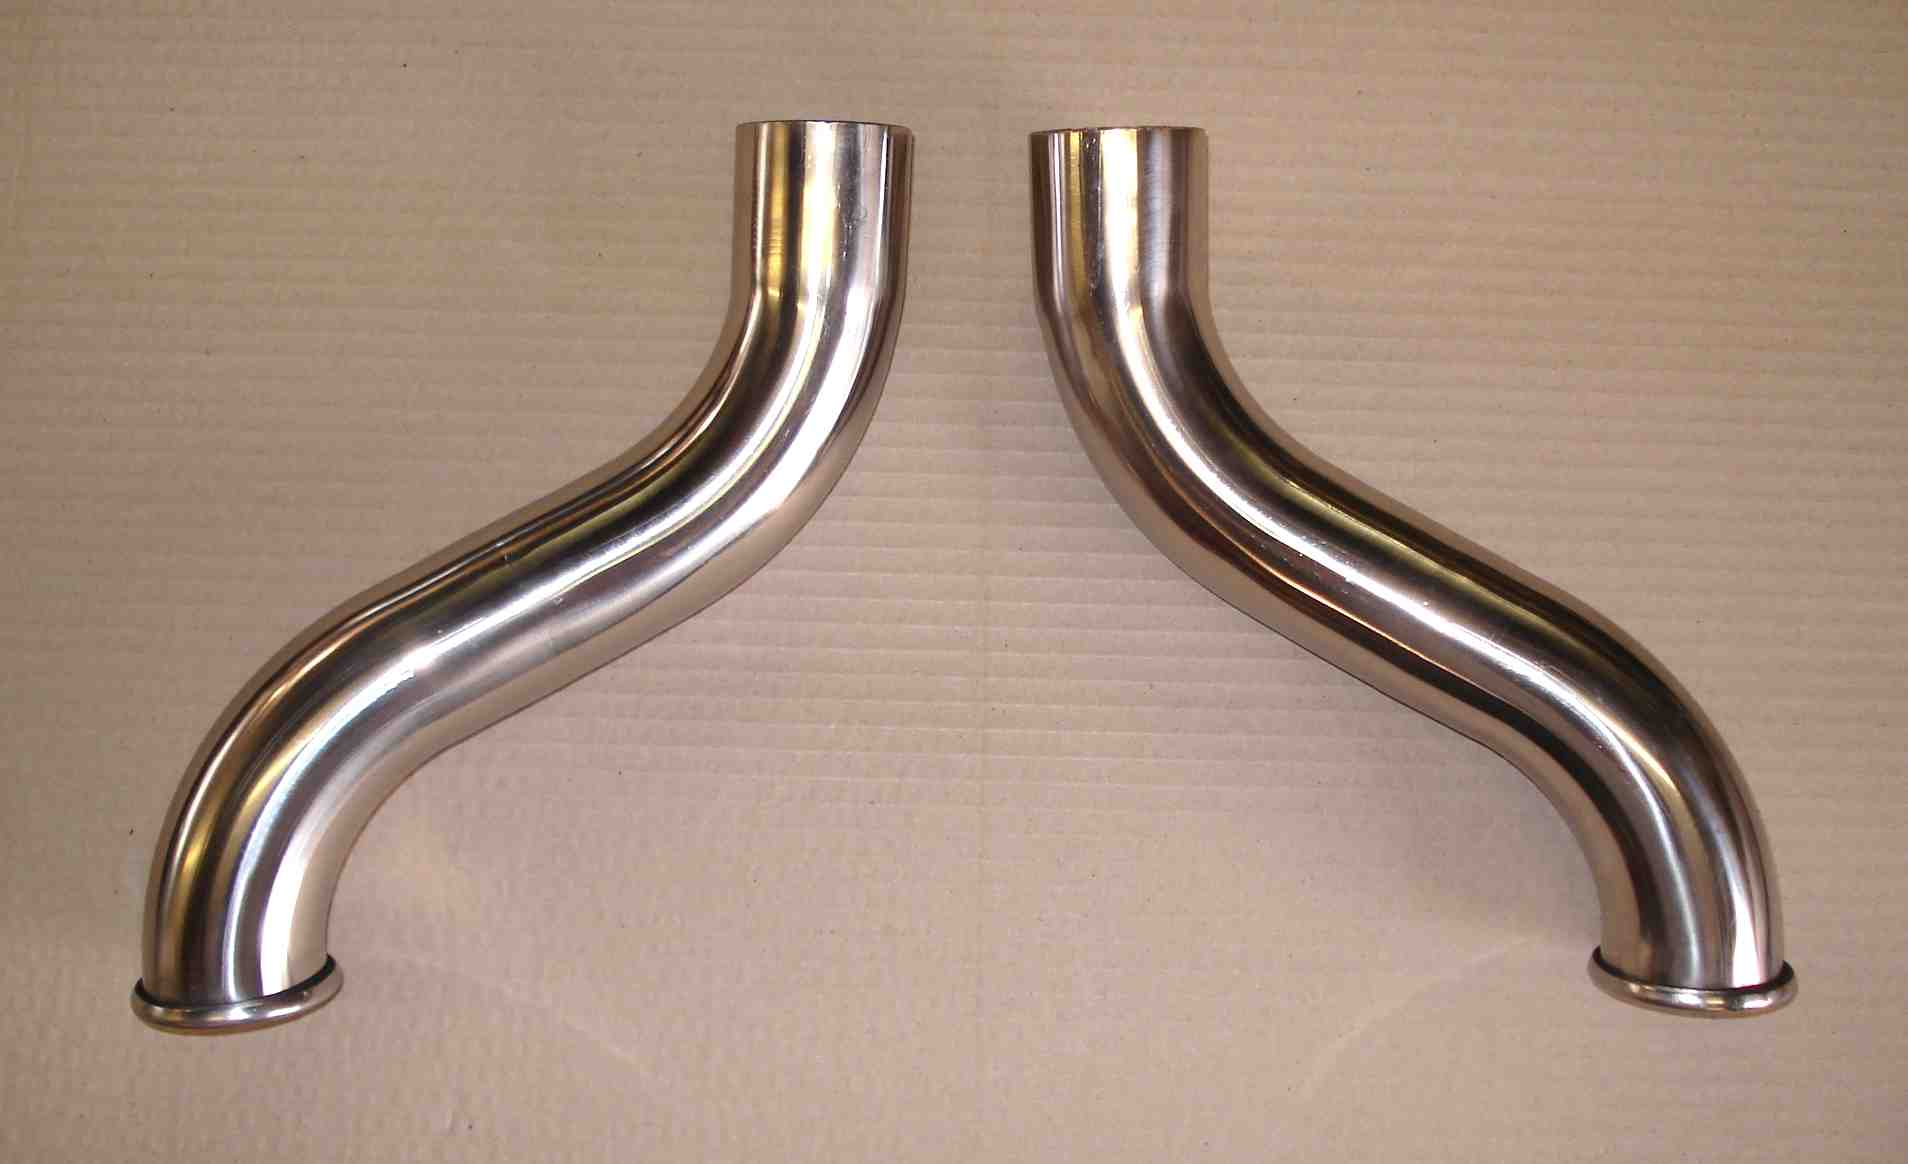 Large bore XJ6/12 tail pipes